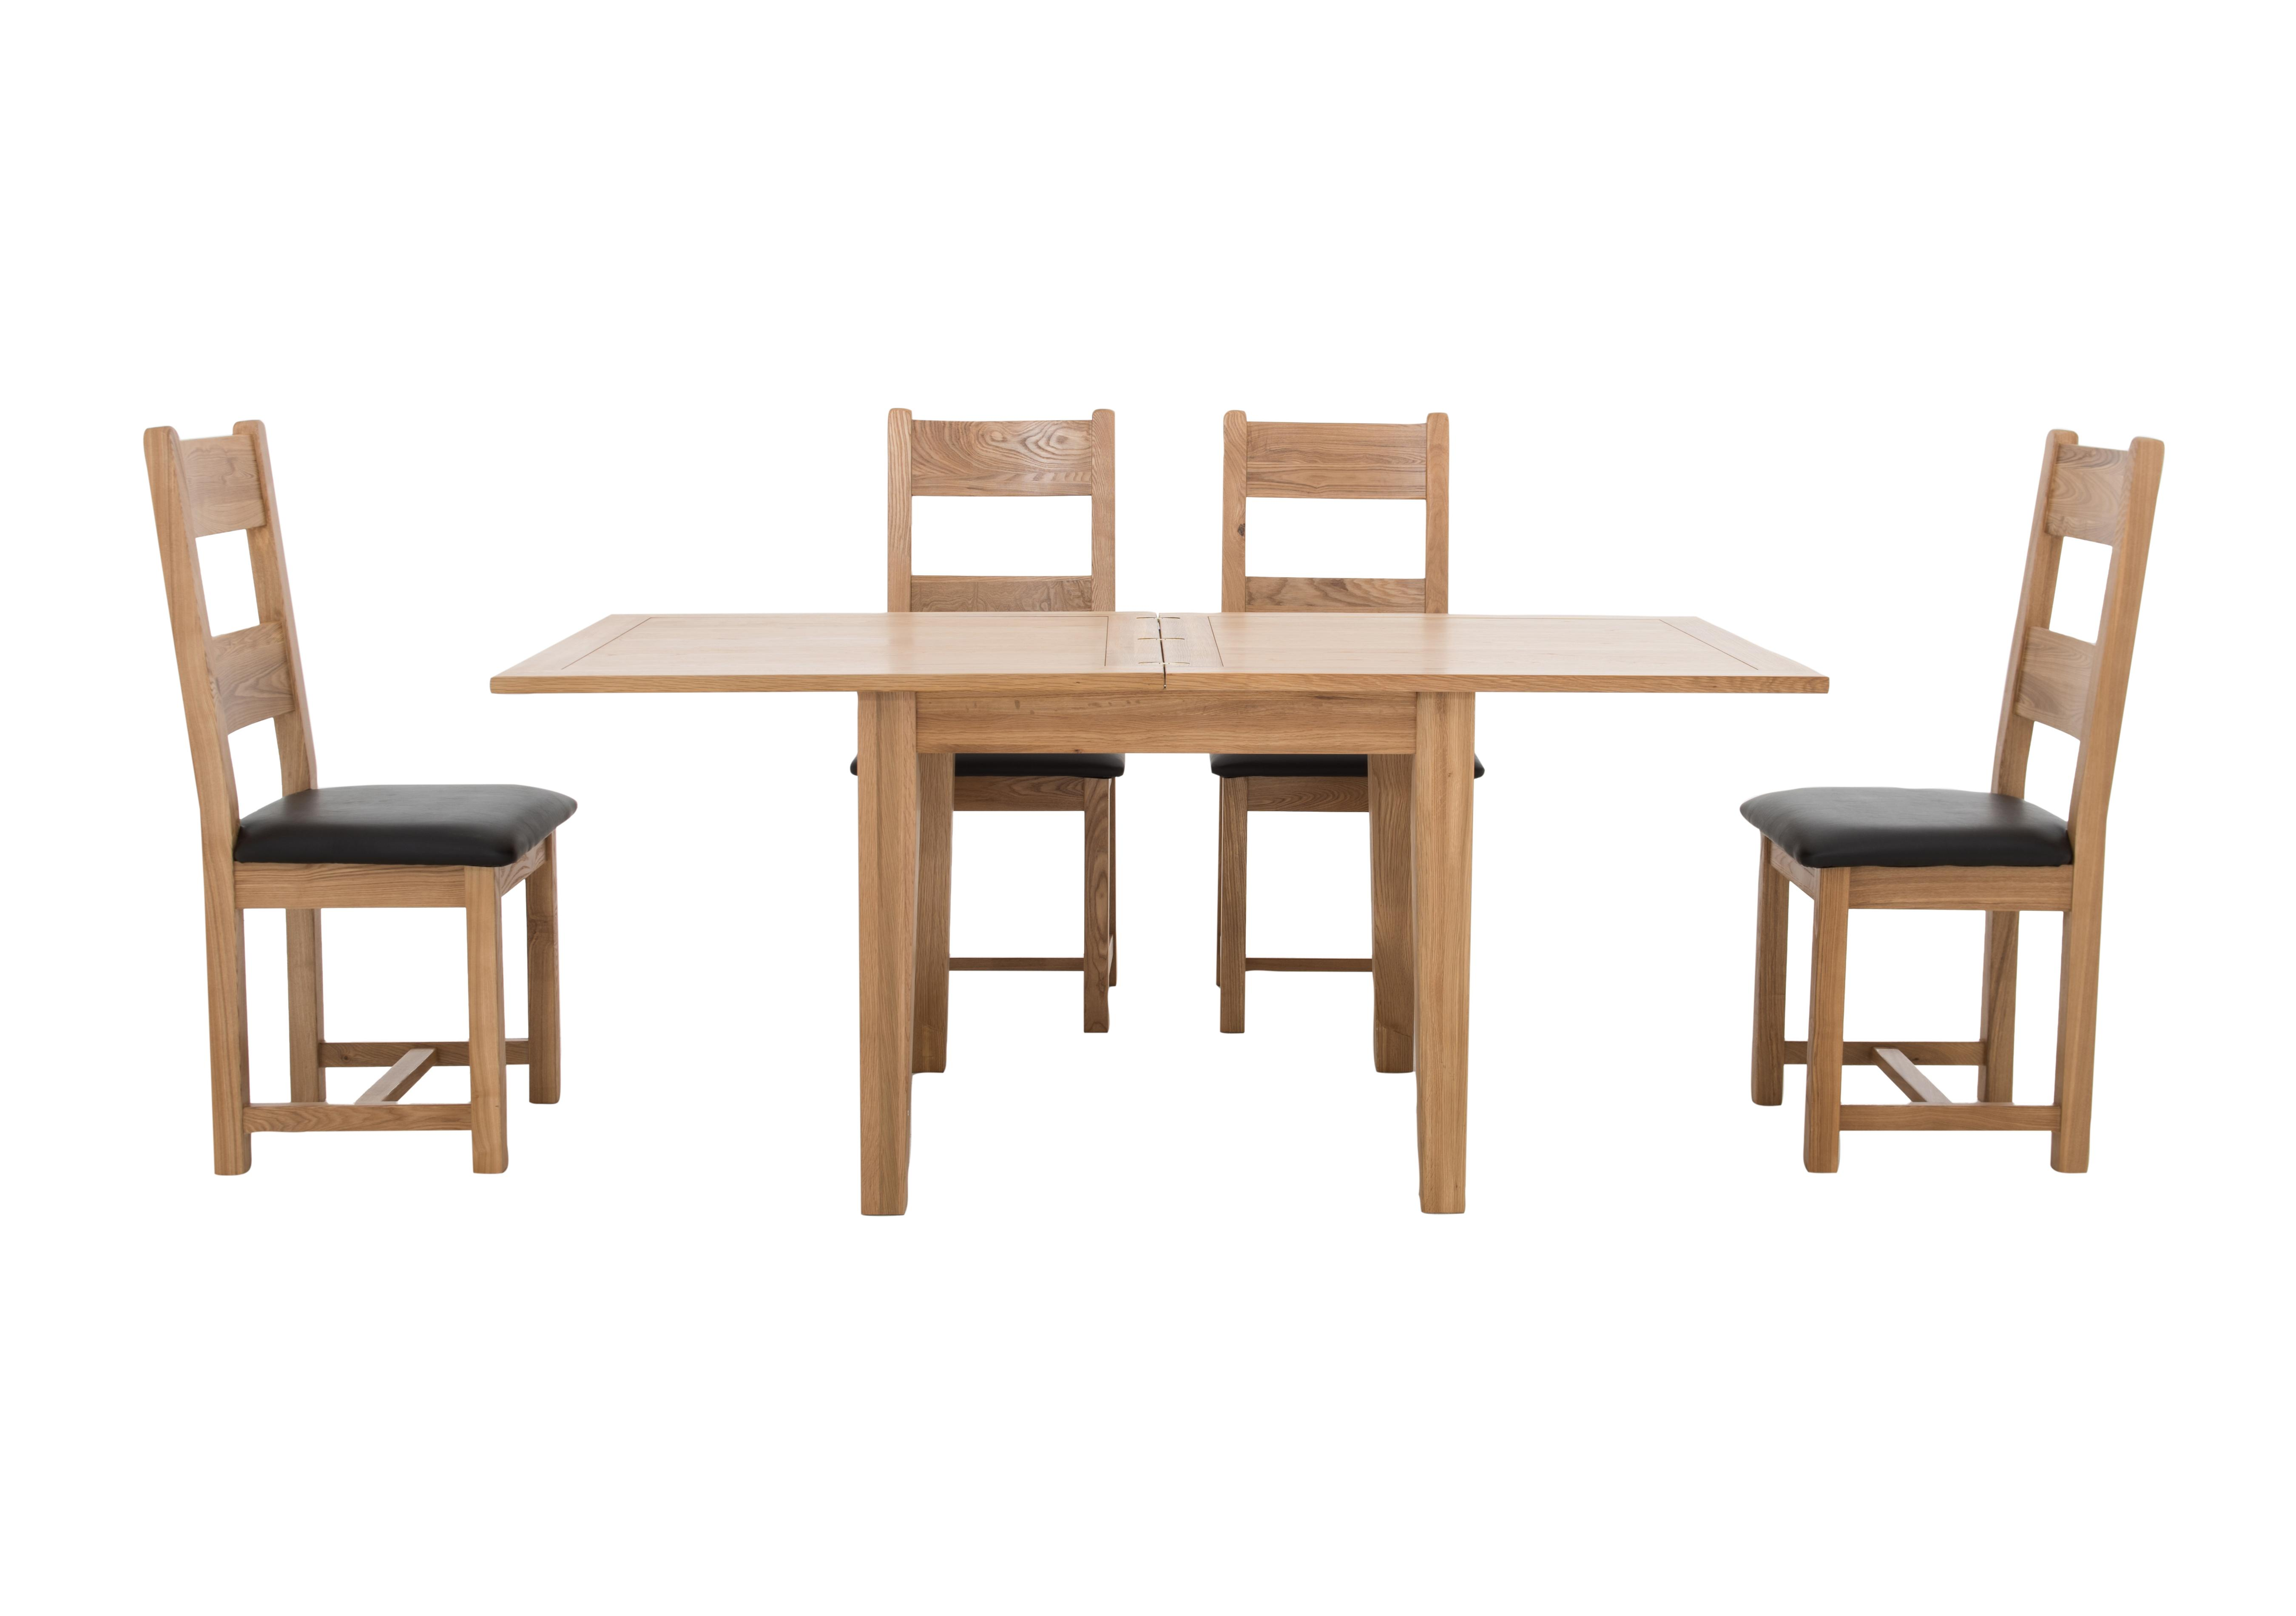 Picture of: California Flip Top Dining Table And 4 Wooden Chairs Furnitureland Furniture Village